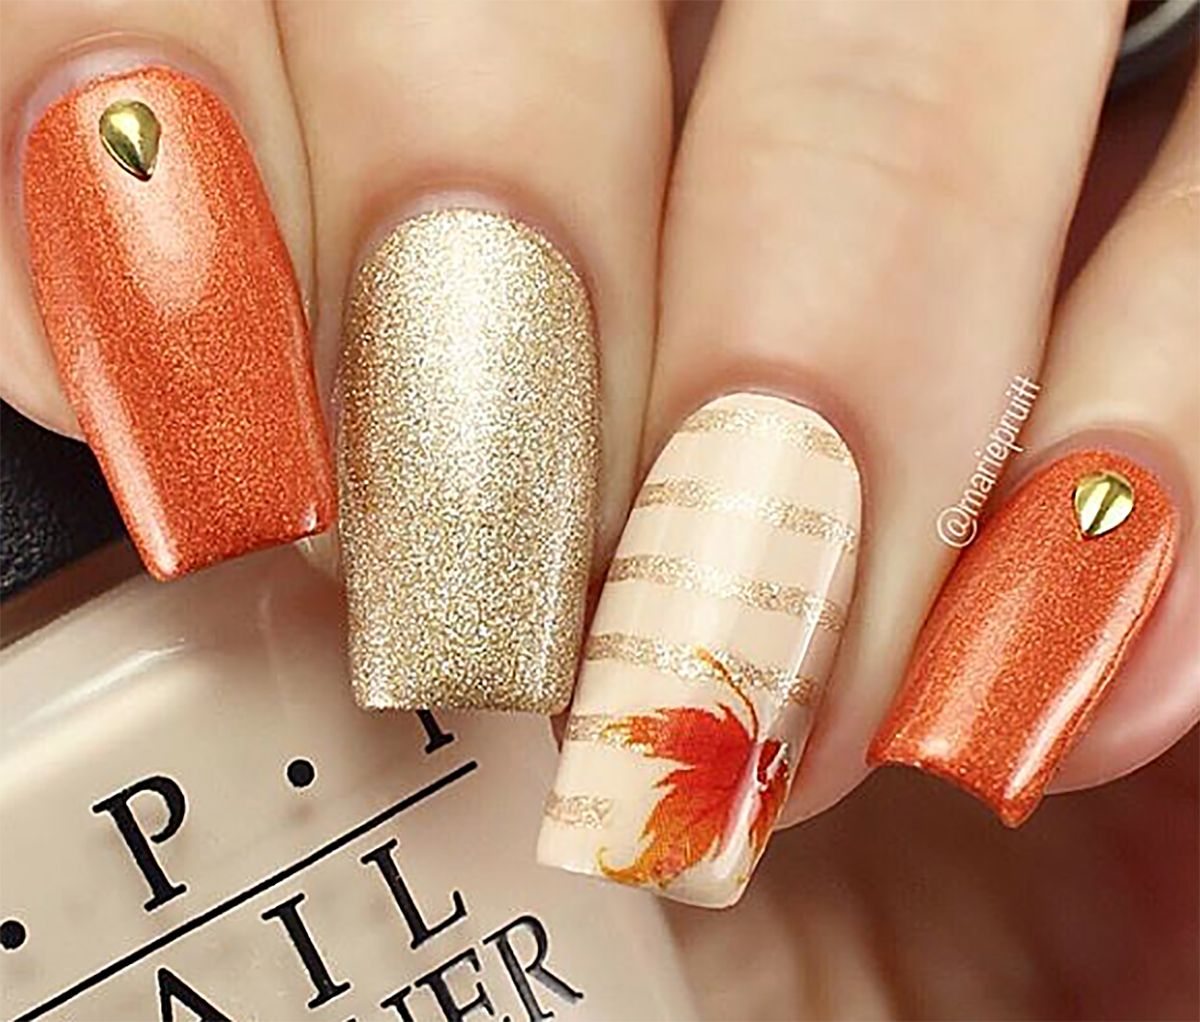 Pin by Moon Sugar Decals on Autumn Leaves & Nature Nail Art Decals ...